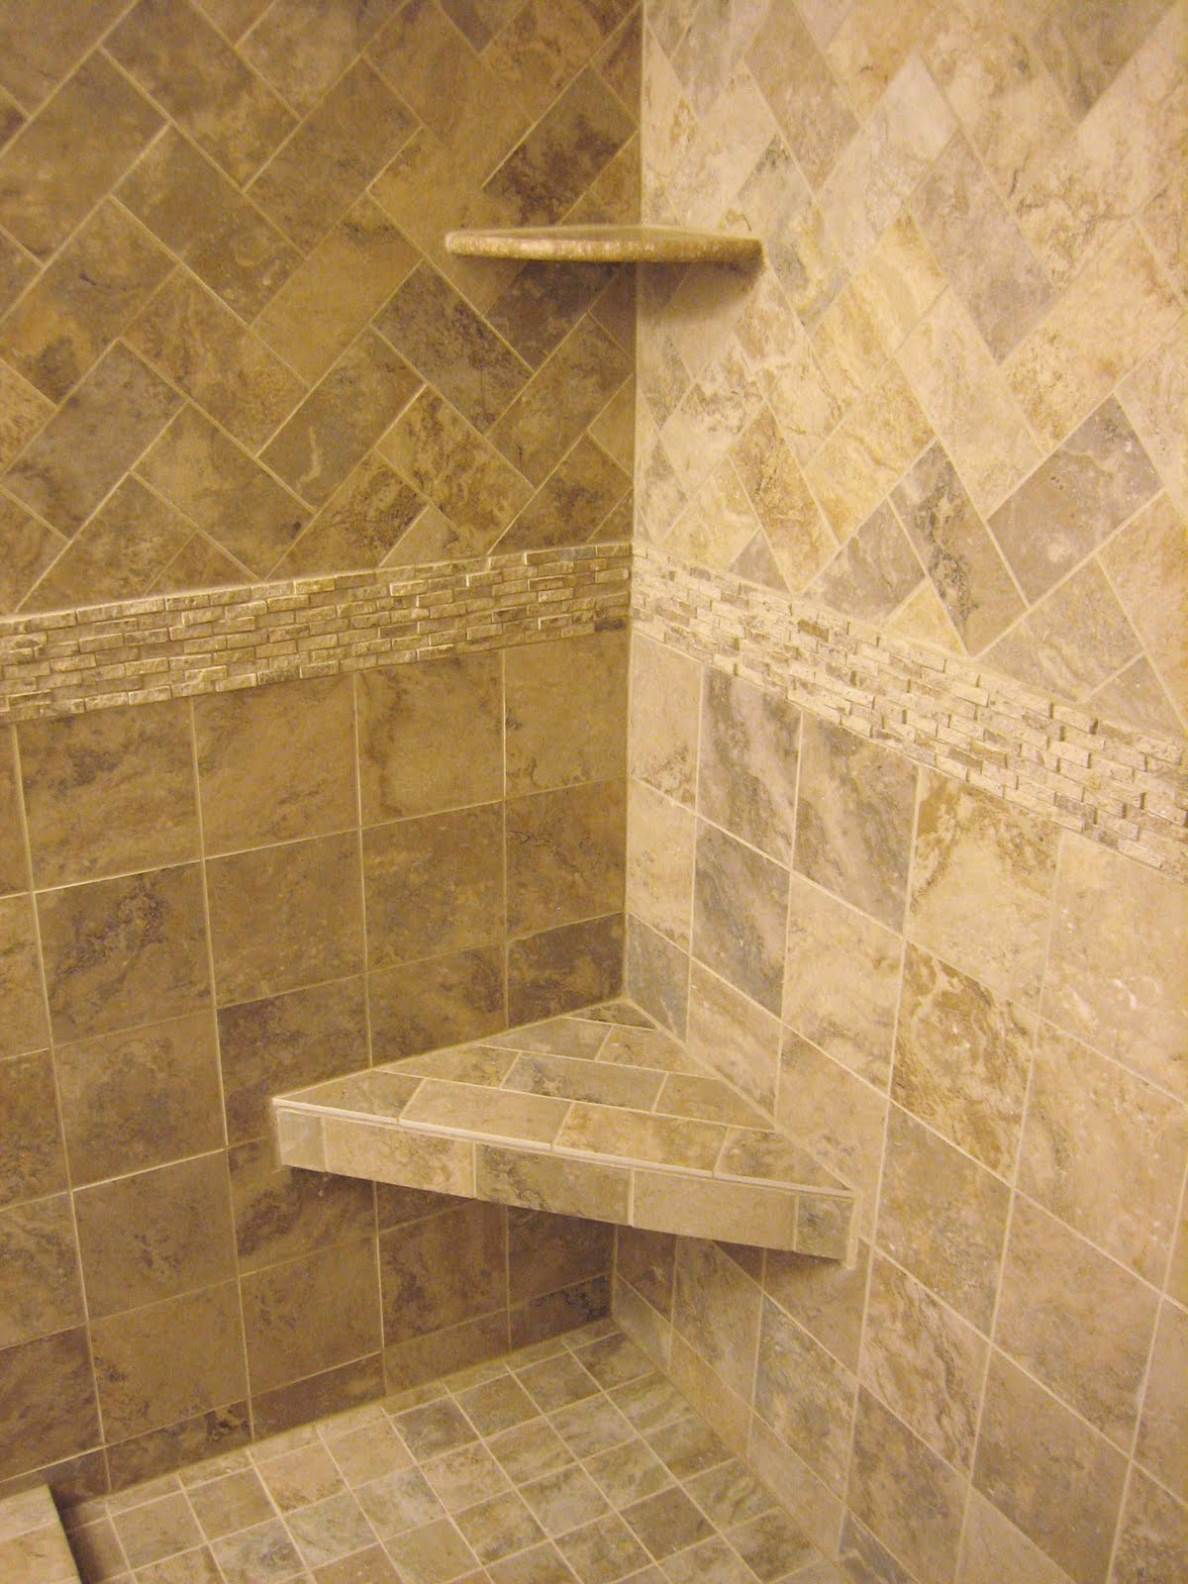 Adorable Design Of The Grey Wall Tile Shower Ideas Added With Corner Shelves Ideas For Bathroom